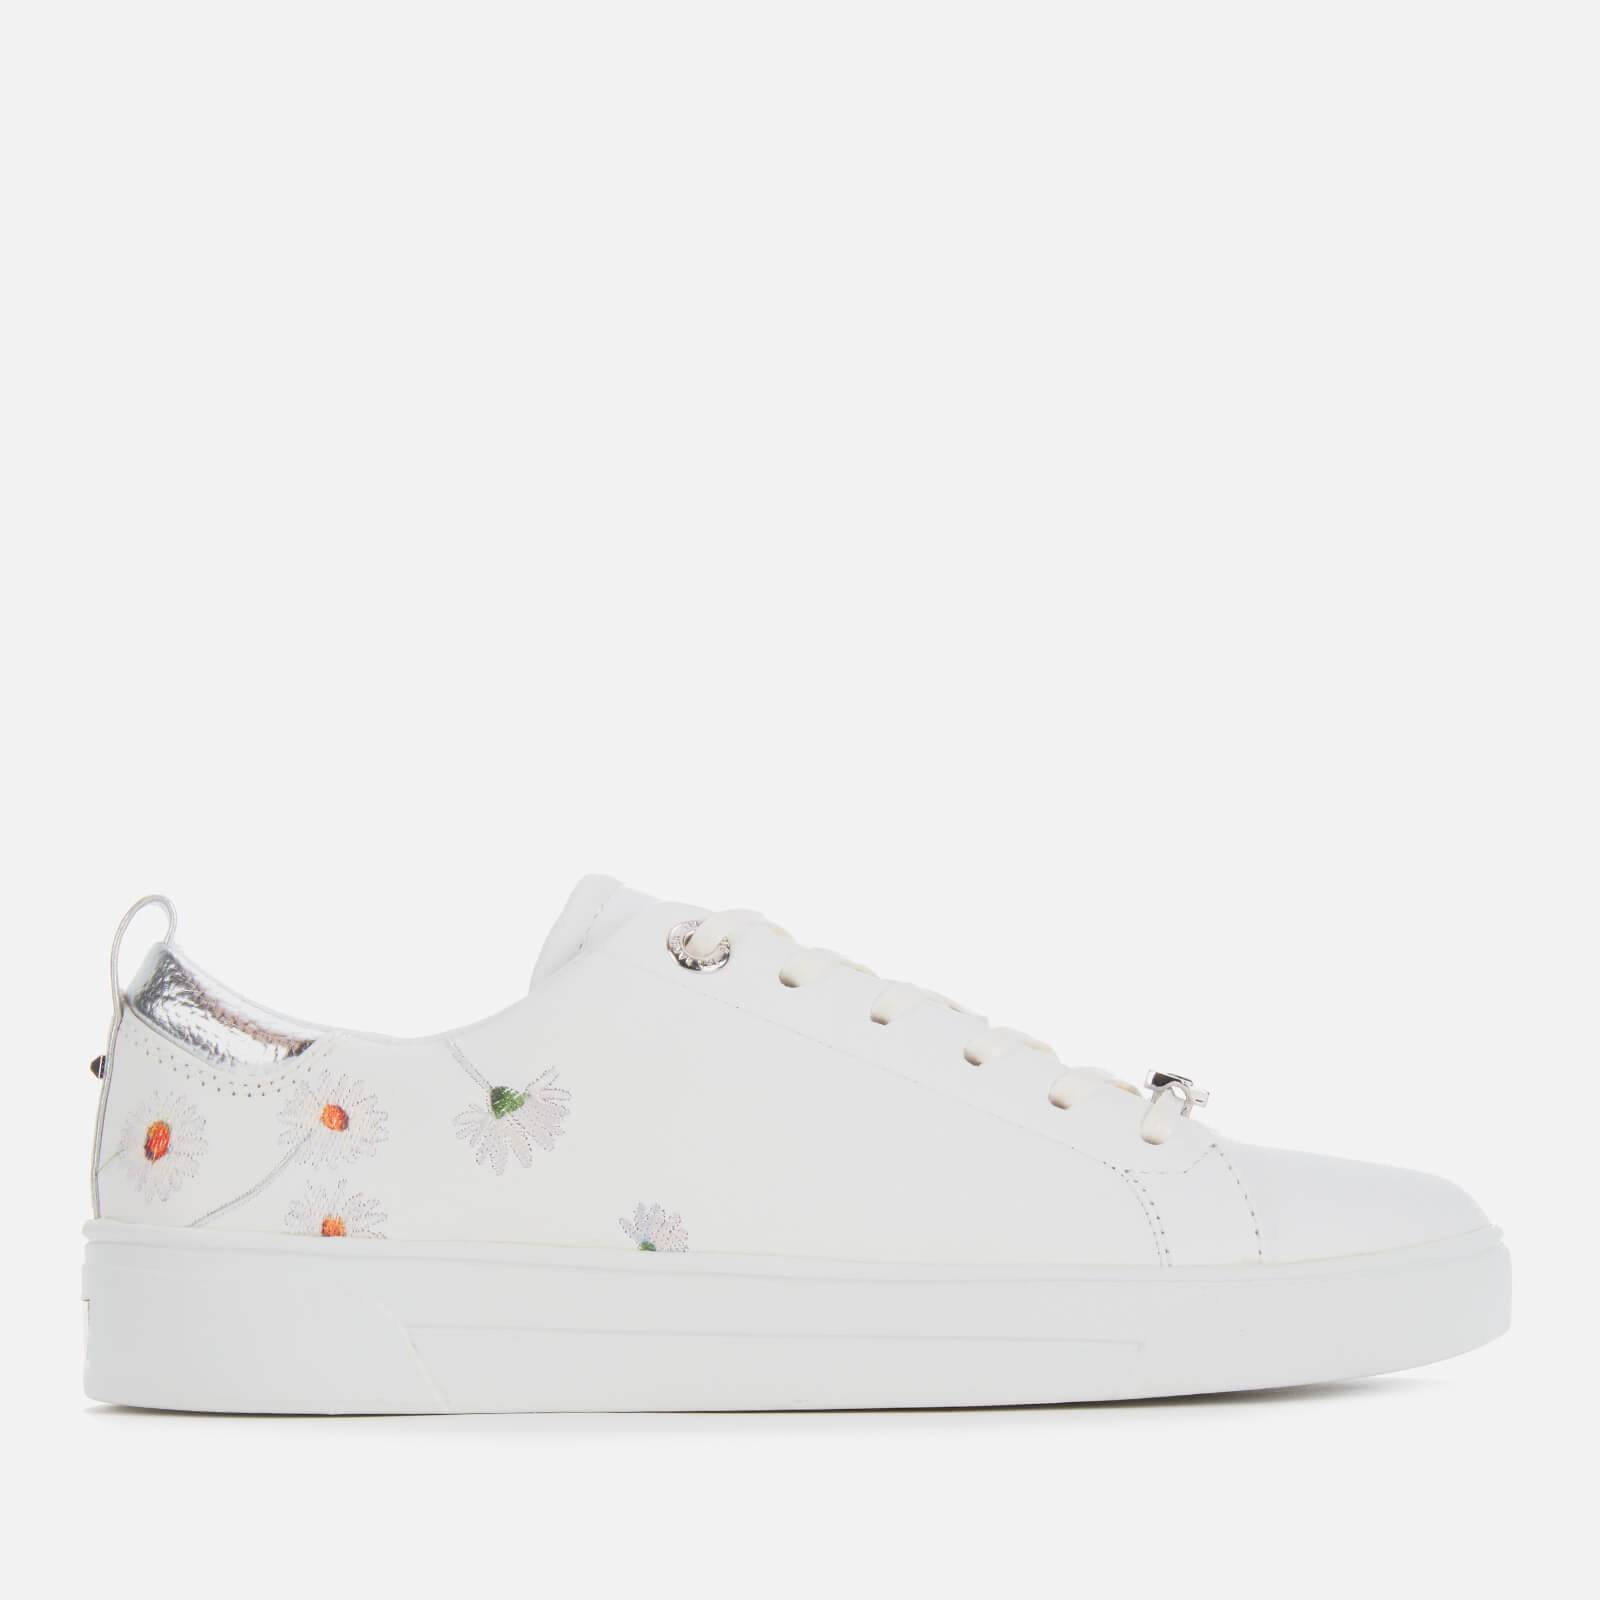 Ted Baker Women's Chalene Leather Low Top Trainers - White - UK 6 - White